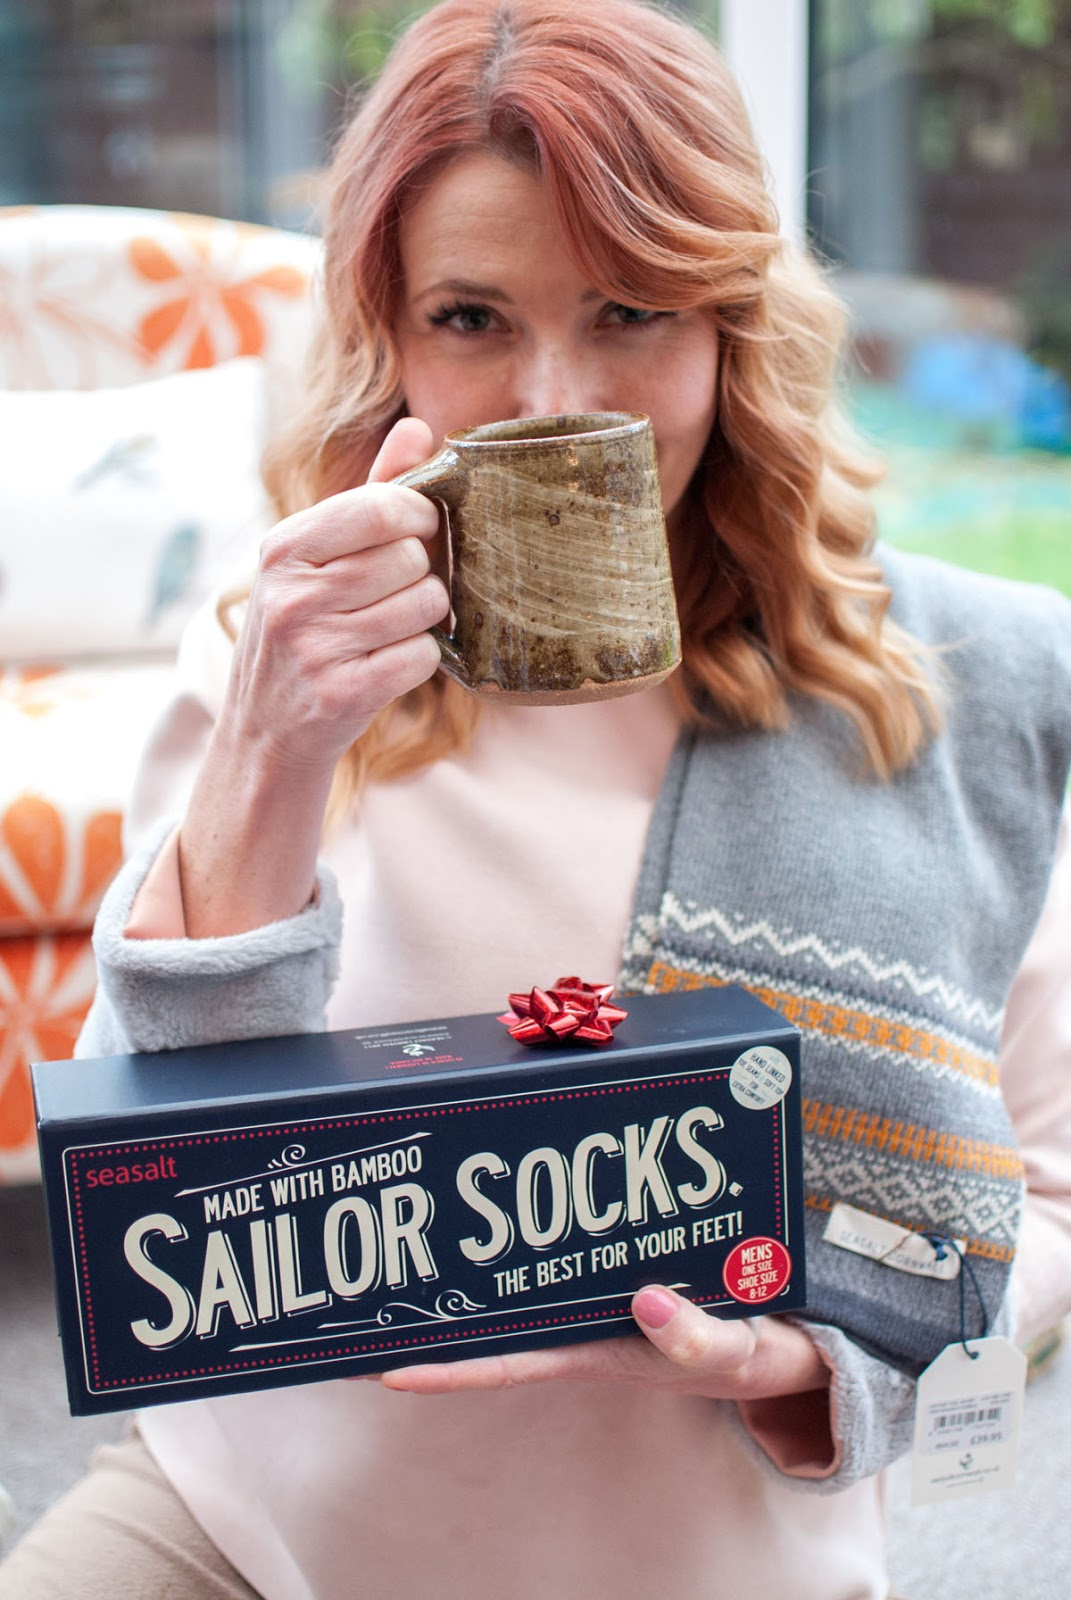 The Ultimate Seasalt Christmas Gift Guide | £200 Giveaway